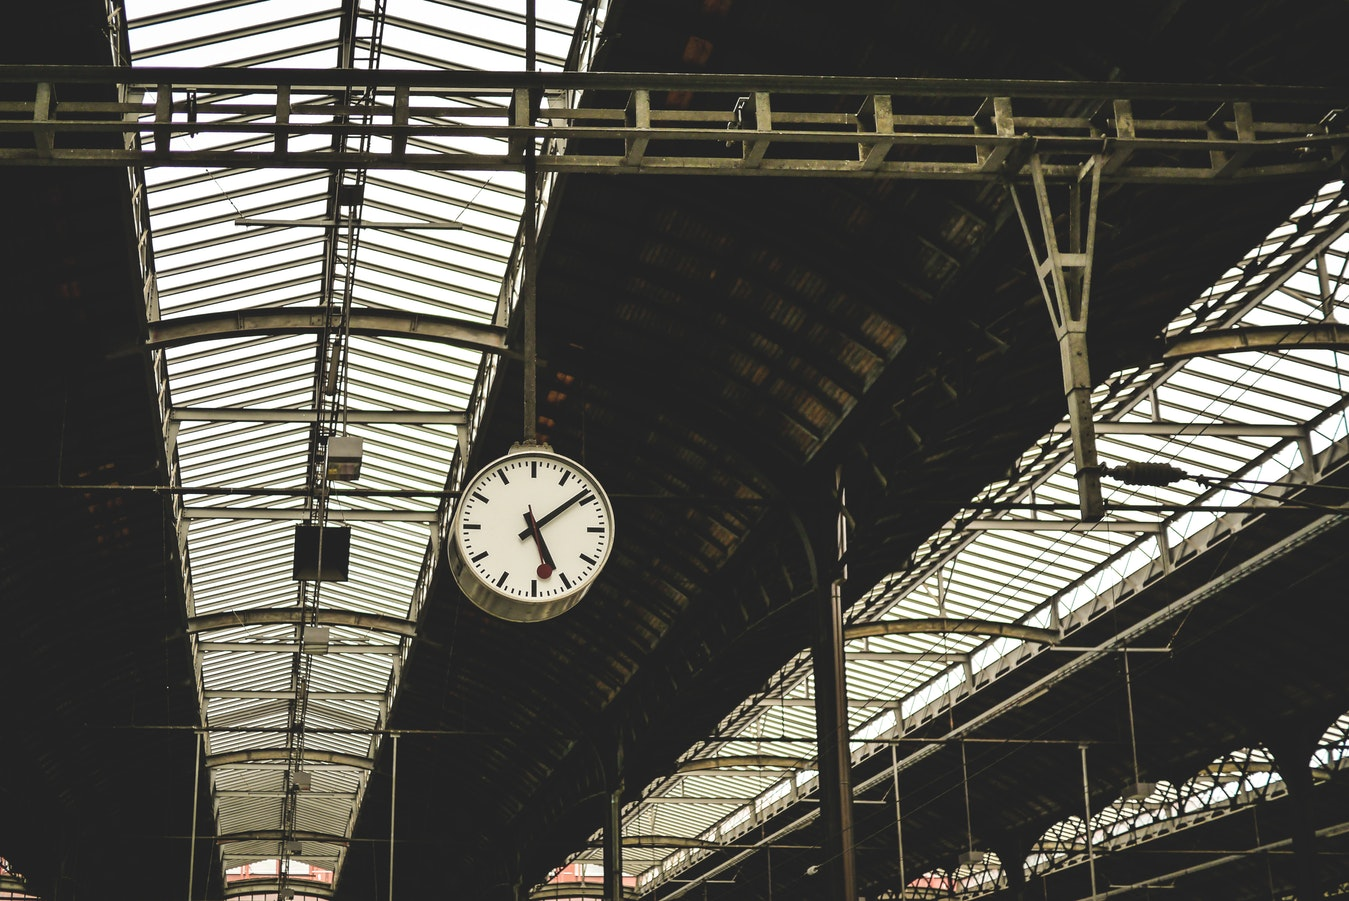 Time_2